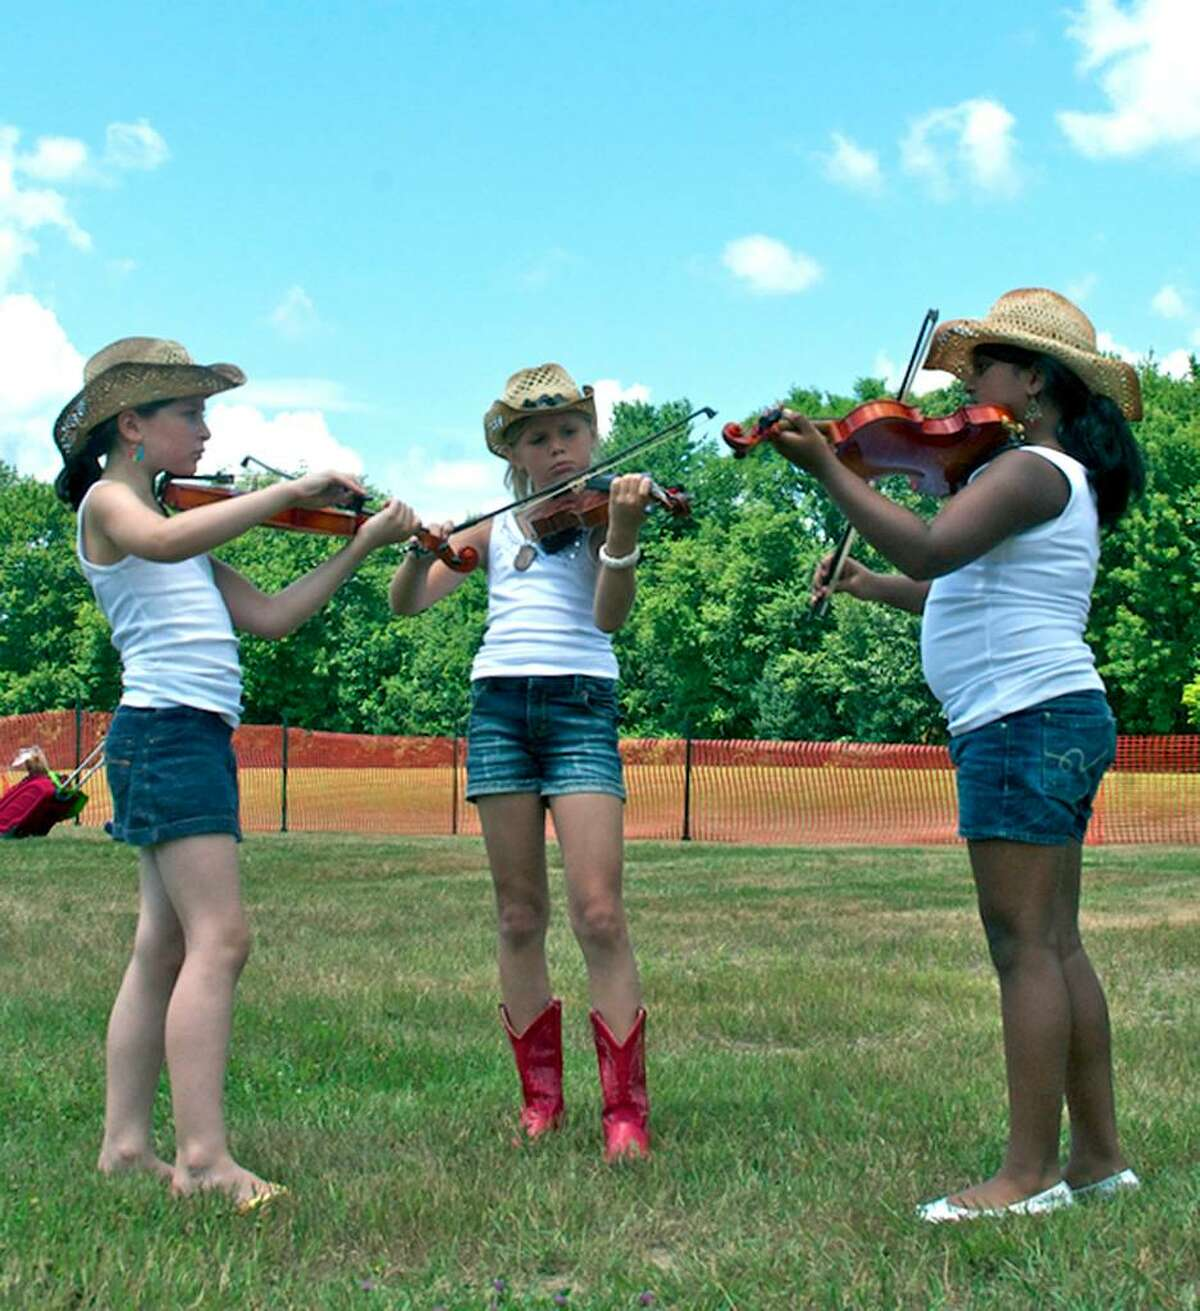 SPECTRUM/Tuning up for their performance are, from left to right, Jenna Hutensky, 8, of West Hartford, Abby Sowa, 9, of Glastonbury and Mahima Rajesh, 10, of Belle Mead, N.J. at the Roxbury Volunteer Fire Department's annual Pickin' n Fiddlin' competition, July 10, 2010 at Hurlburt Community Park.